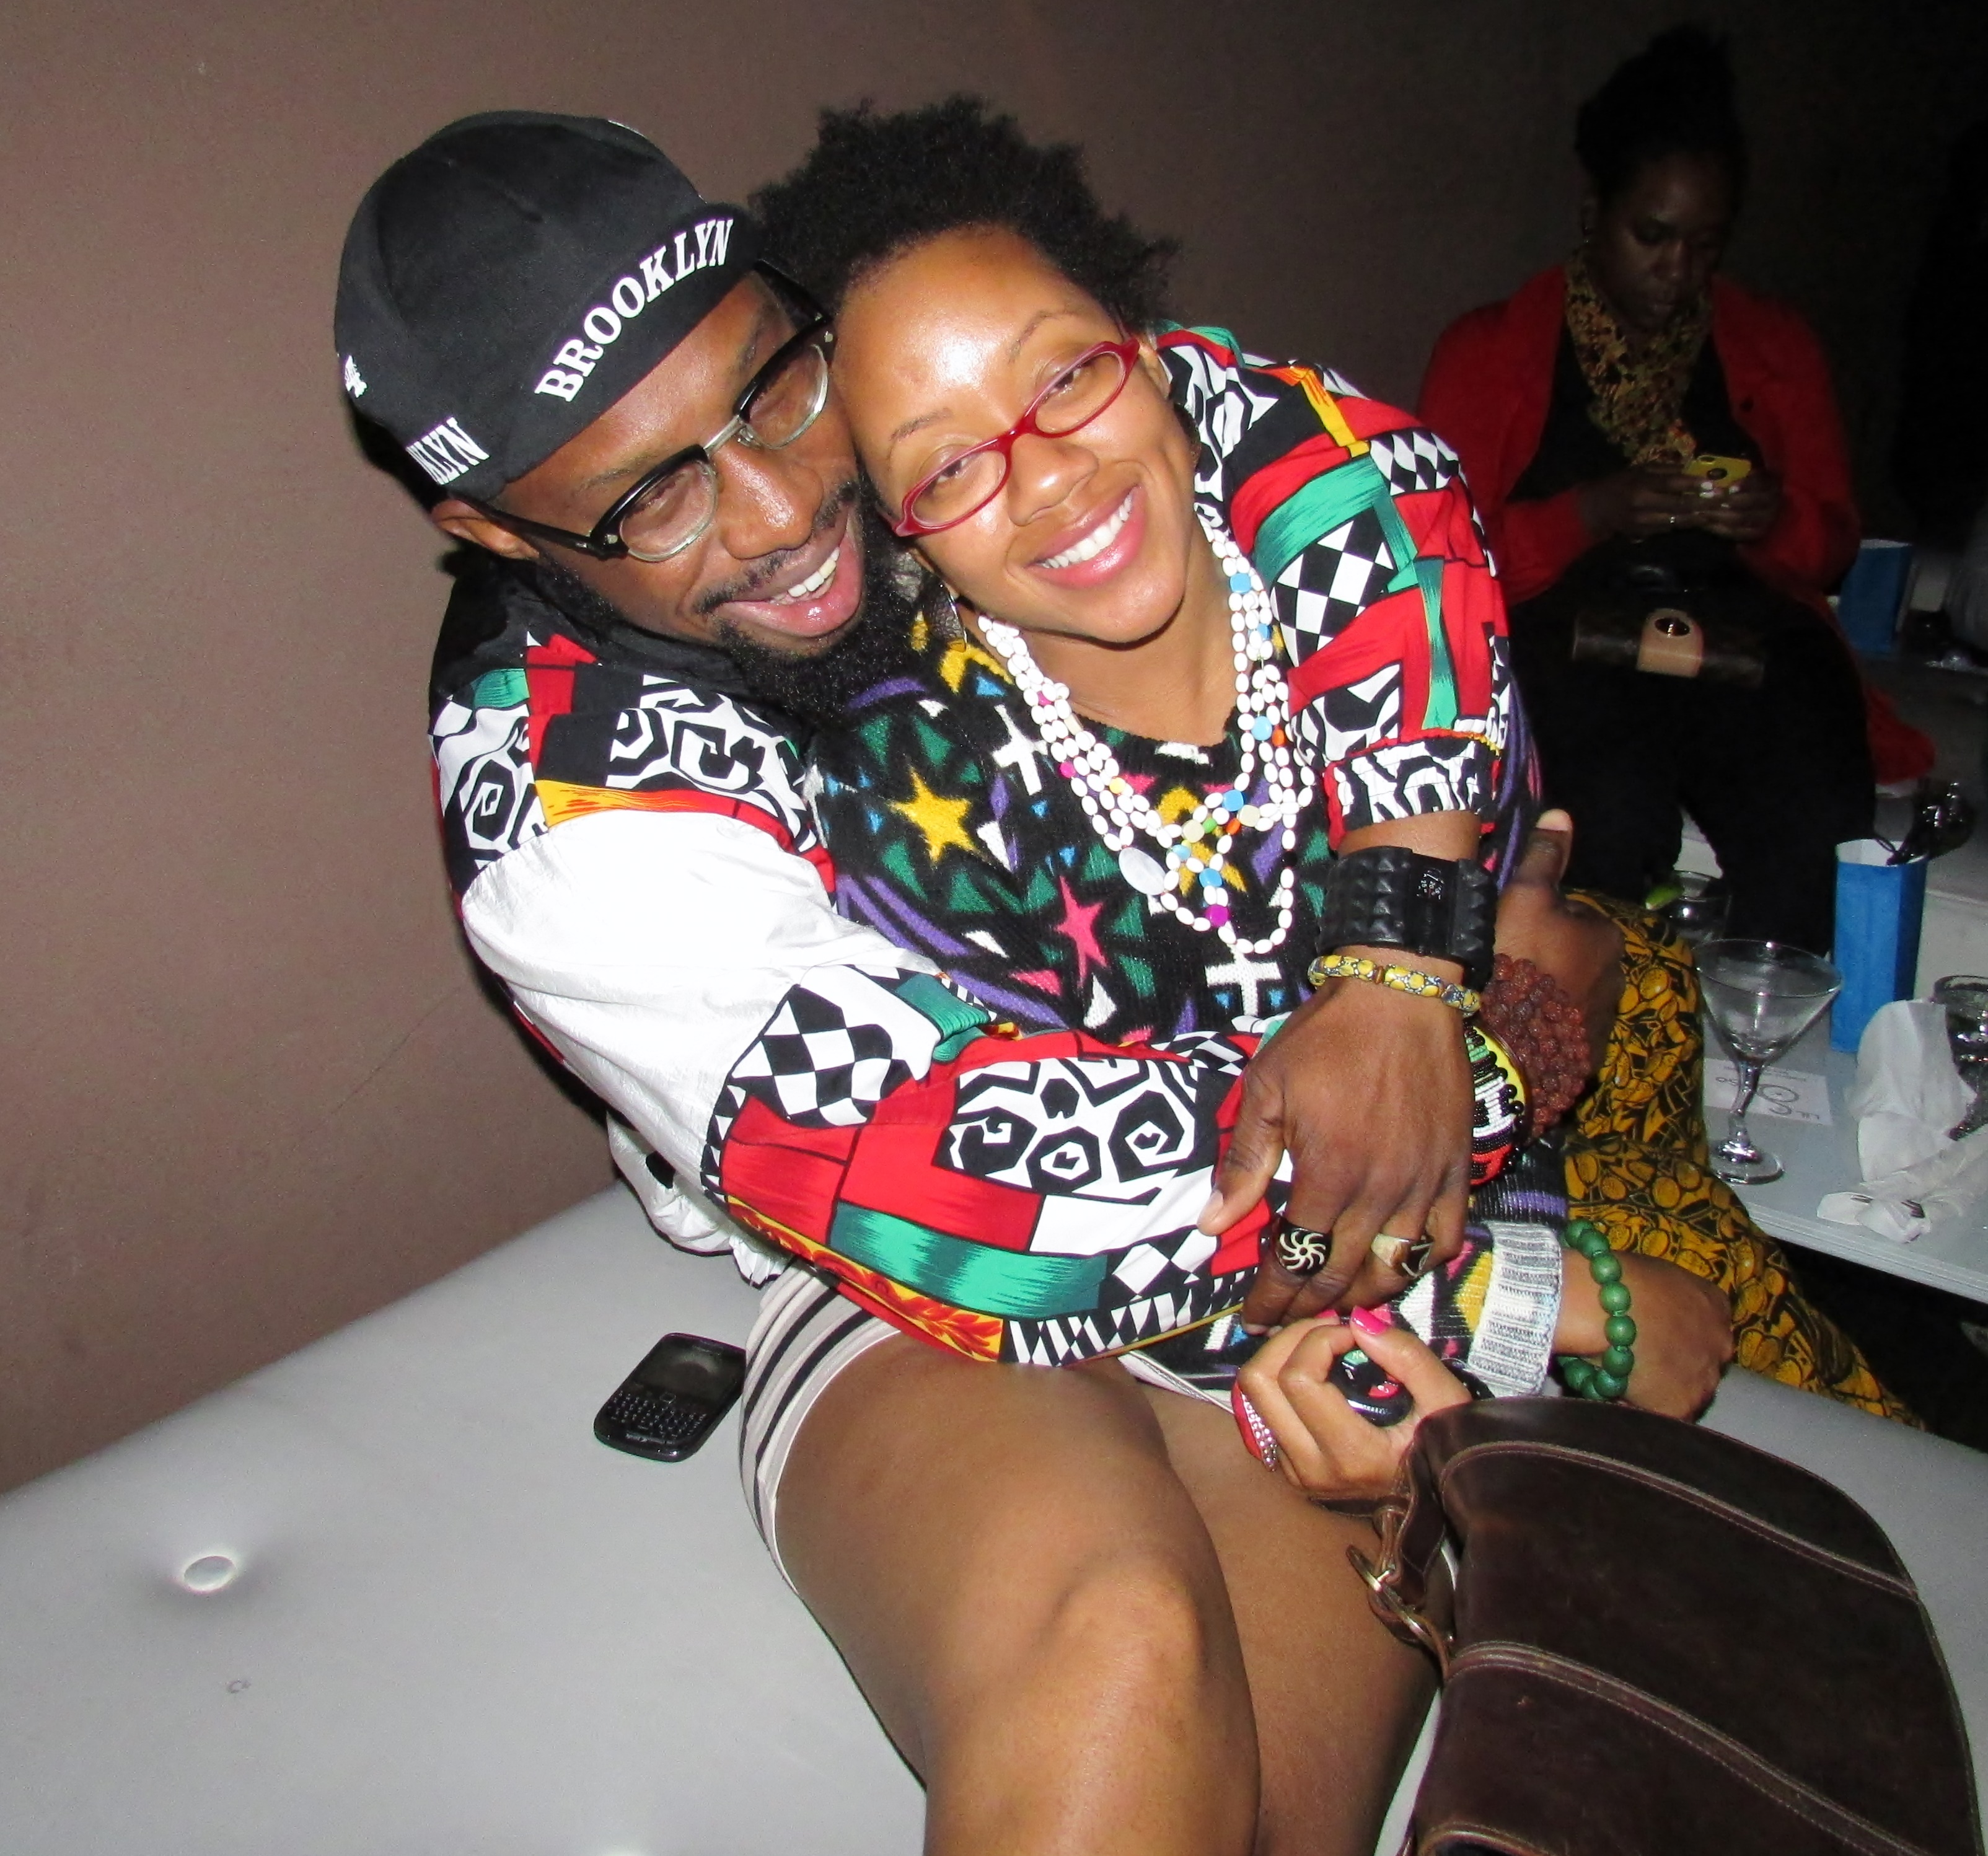 This couple was giving life to the place in their colors and patterns. They looked perfect together in their eclectic aura. Fashion!